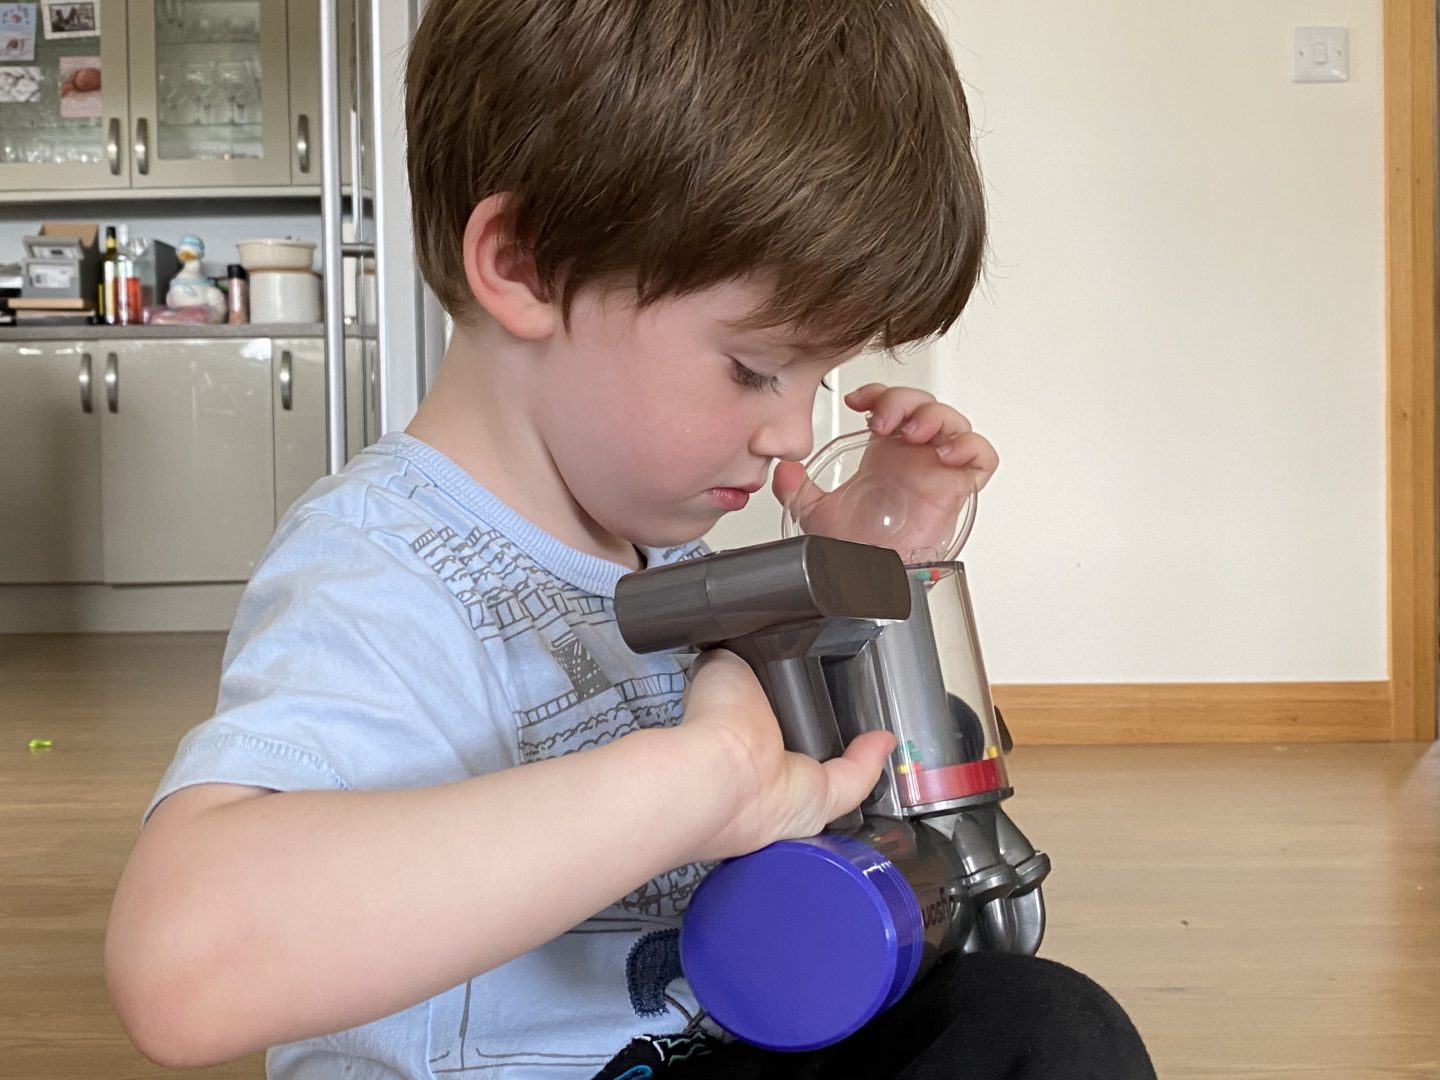 A boy looking into the dust compartment of a toy Dyson